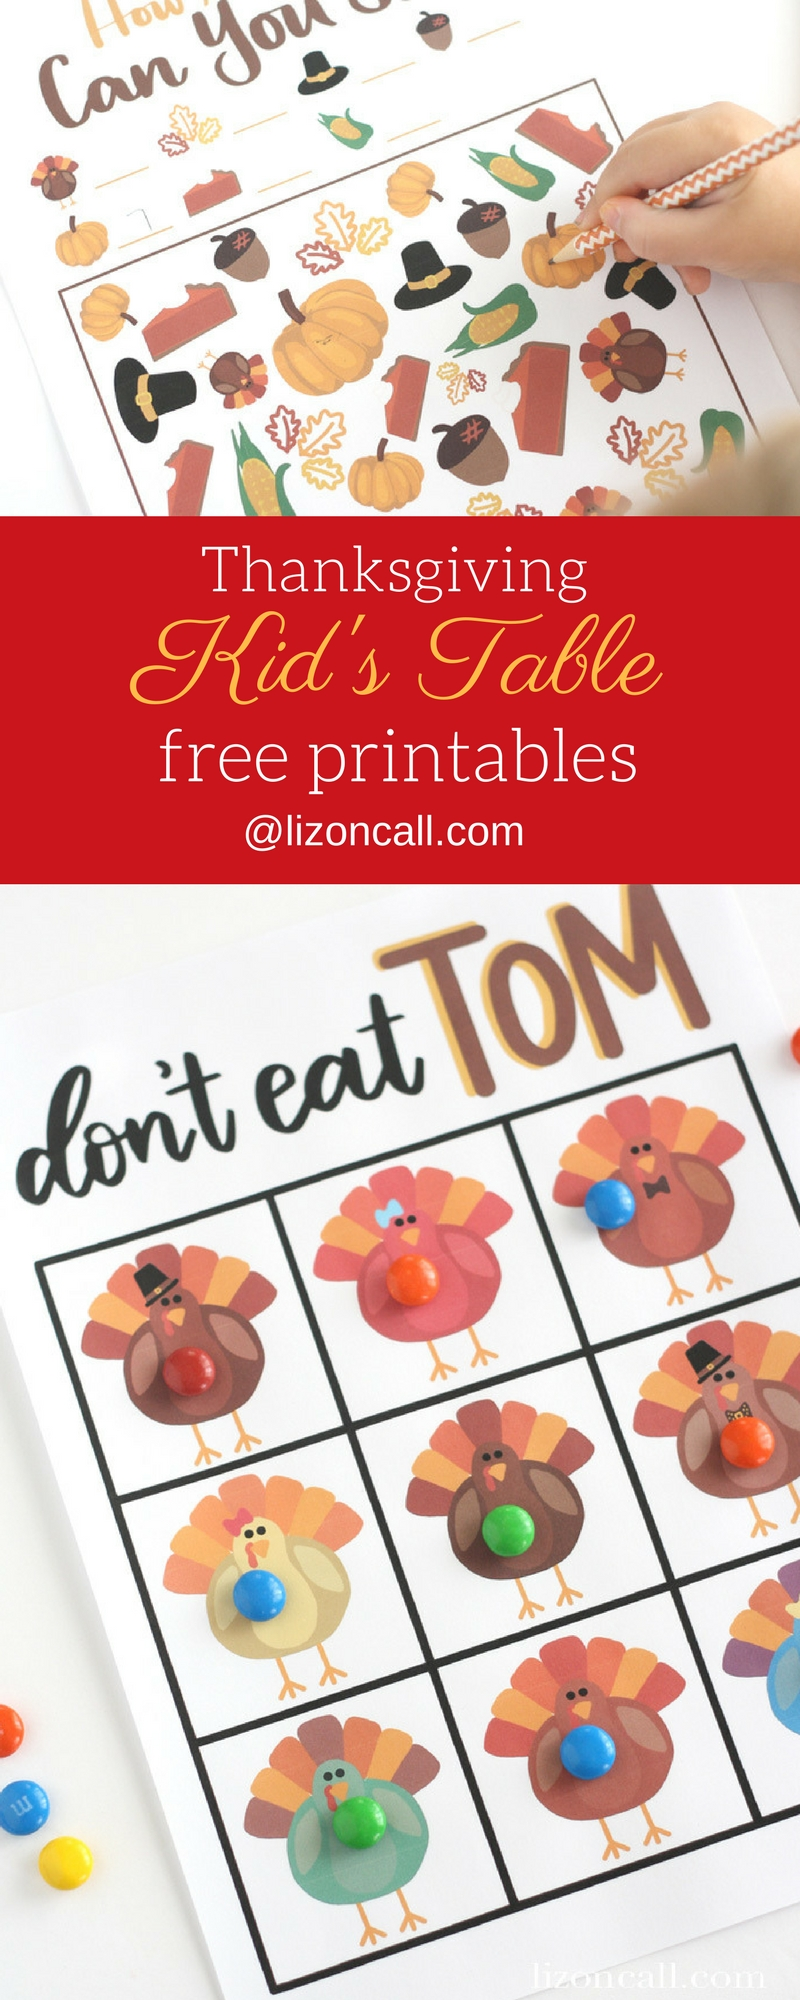 Keep those little ones entertained while you're busy in the kitchen getting all the food ready with these Thanksgiving kid's table printables. #thanksgiving #kidstable